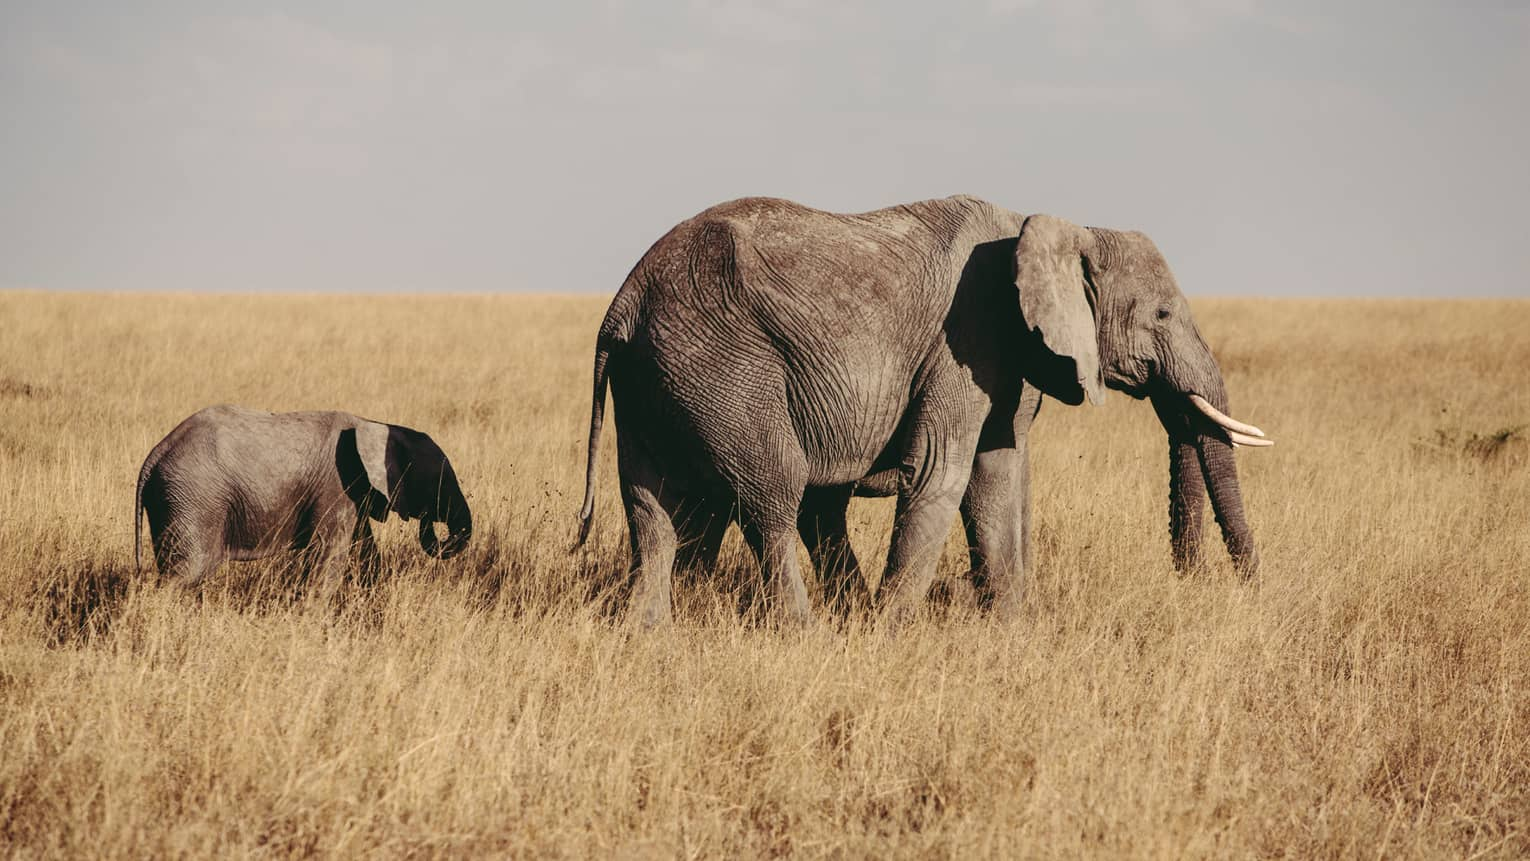 Elephant and baby walk through grass in field